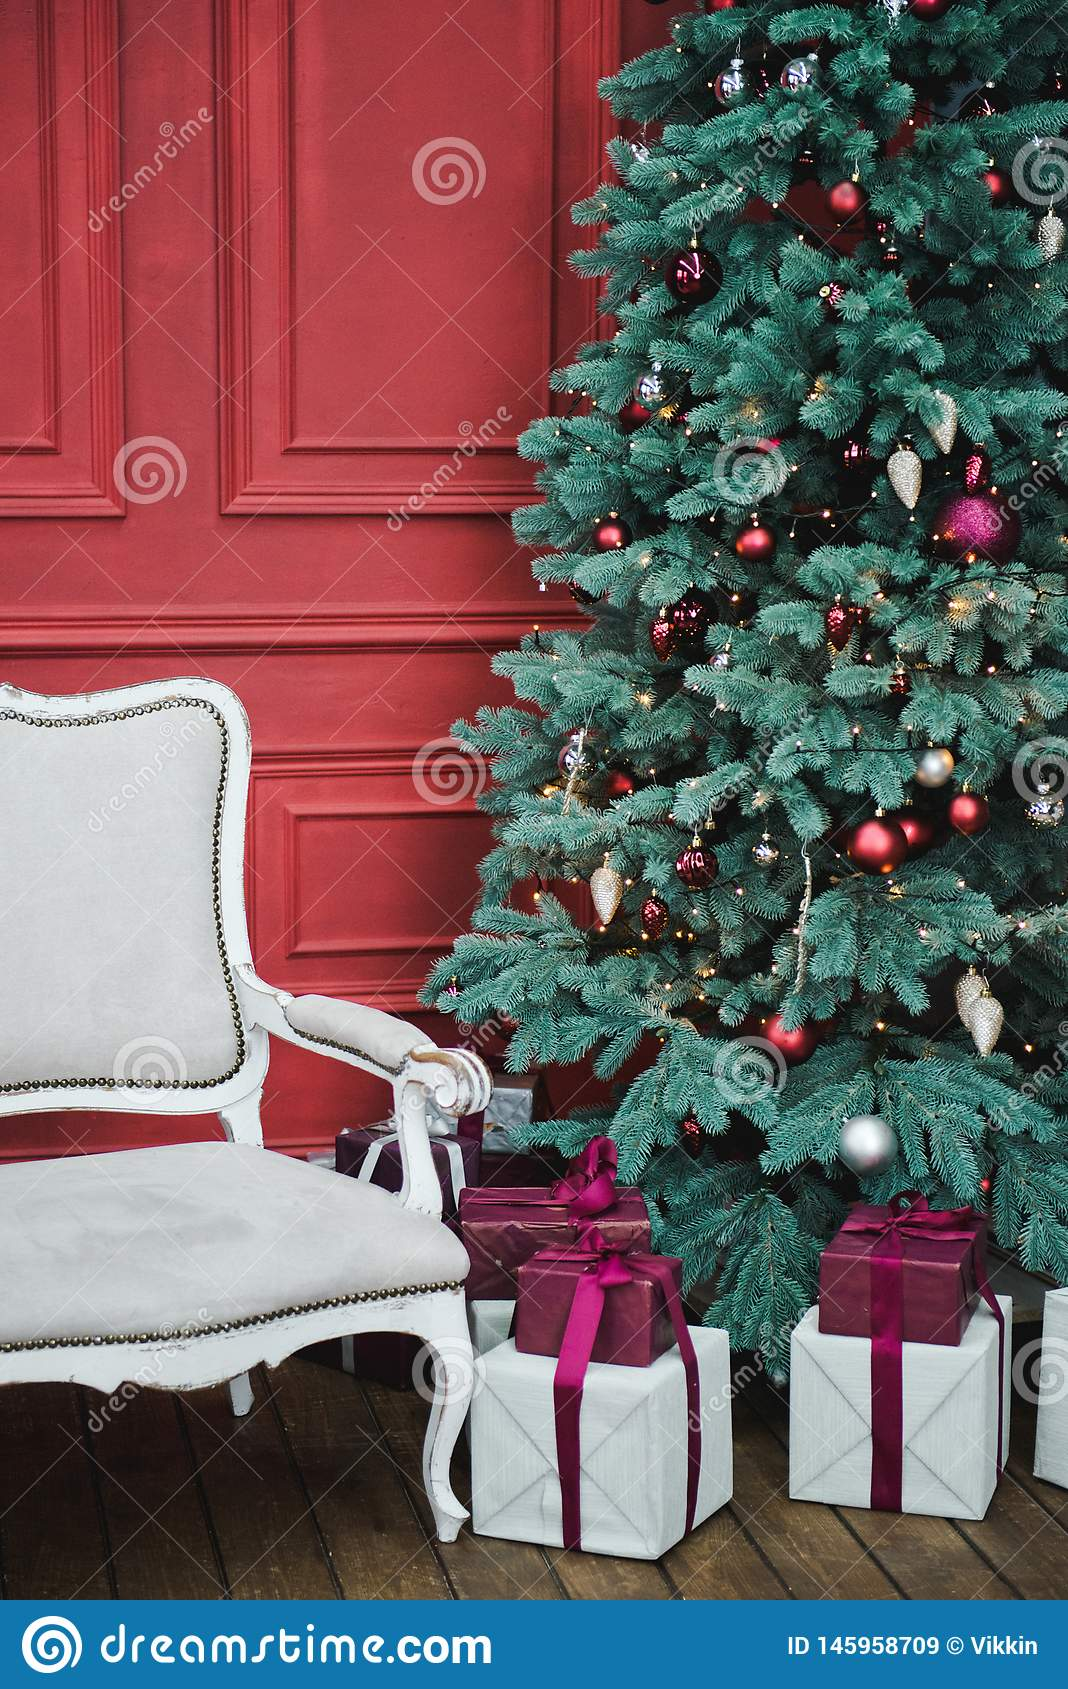 Beautiful New Year decorated classic home interior. Winter background. Living room with a Christmas decor. Holiday background. New